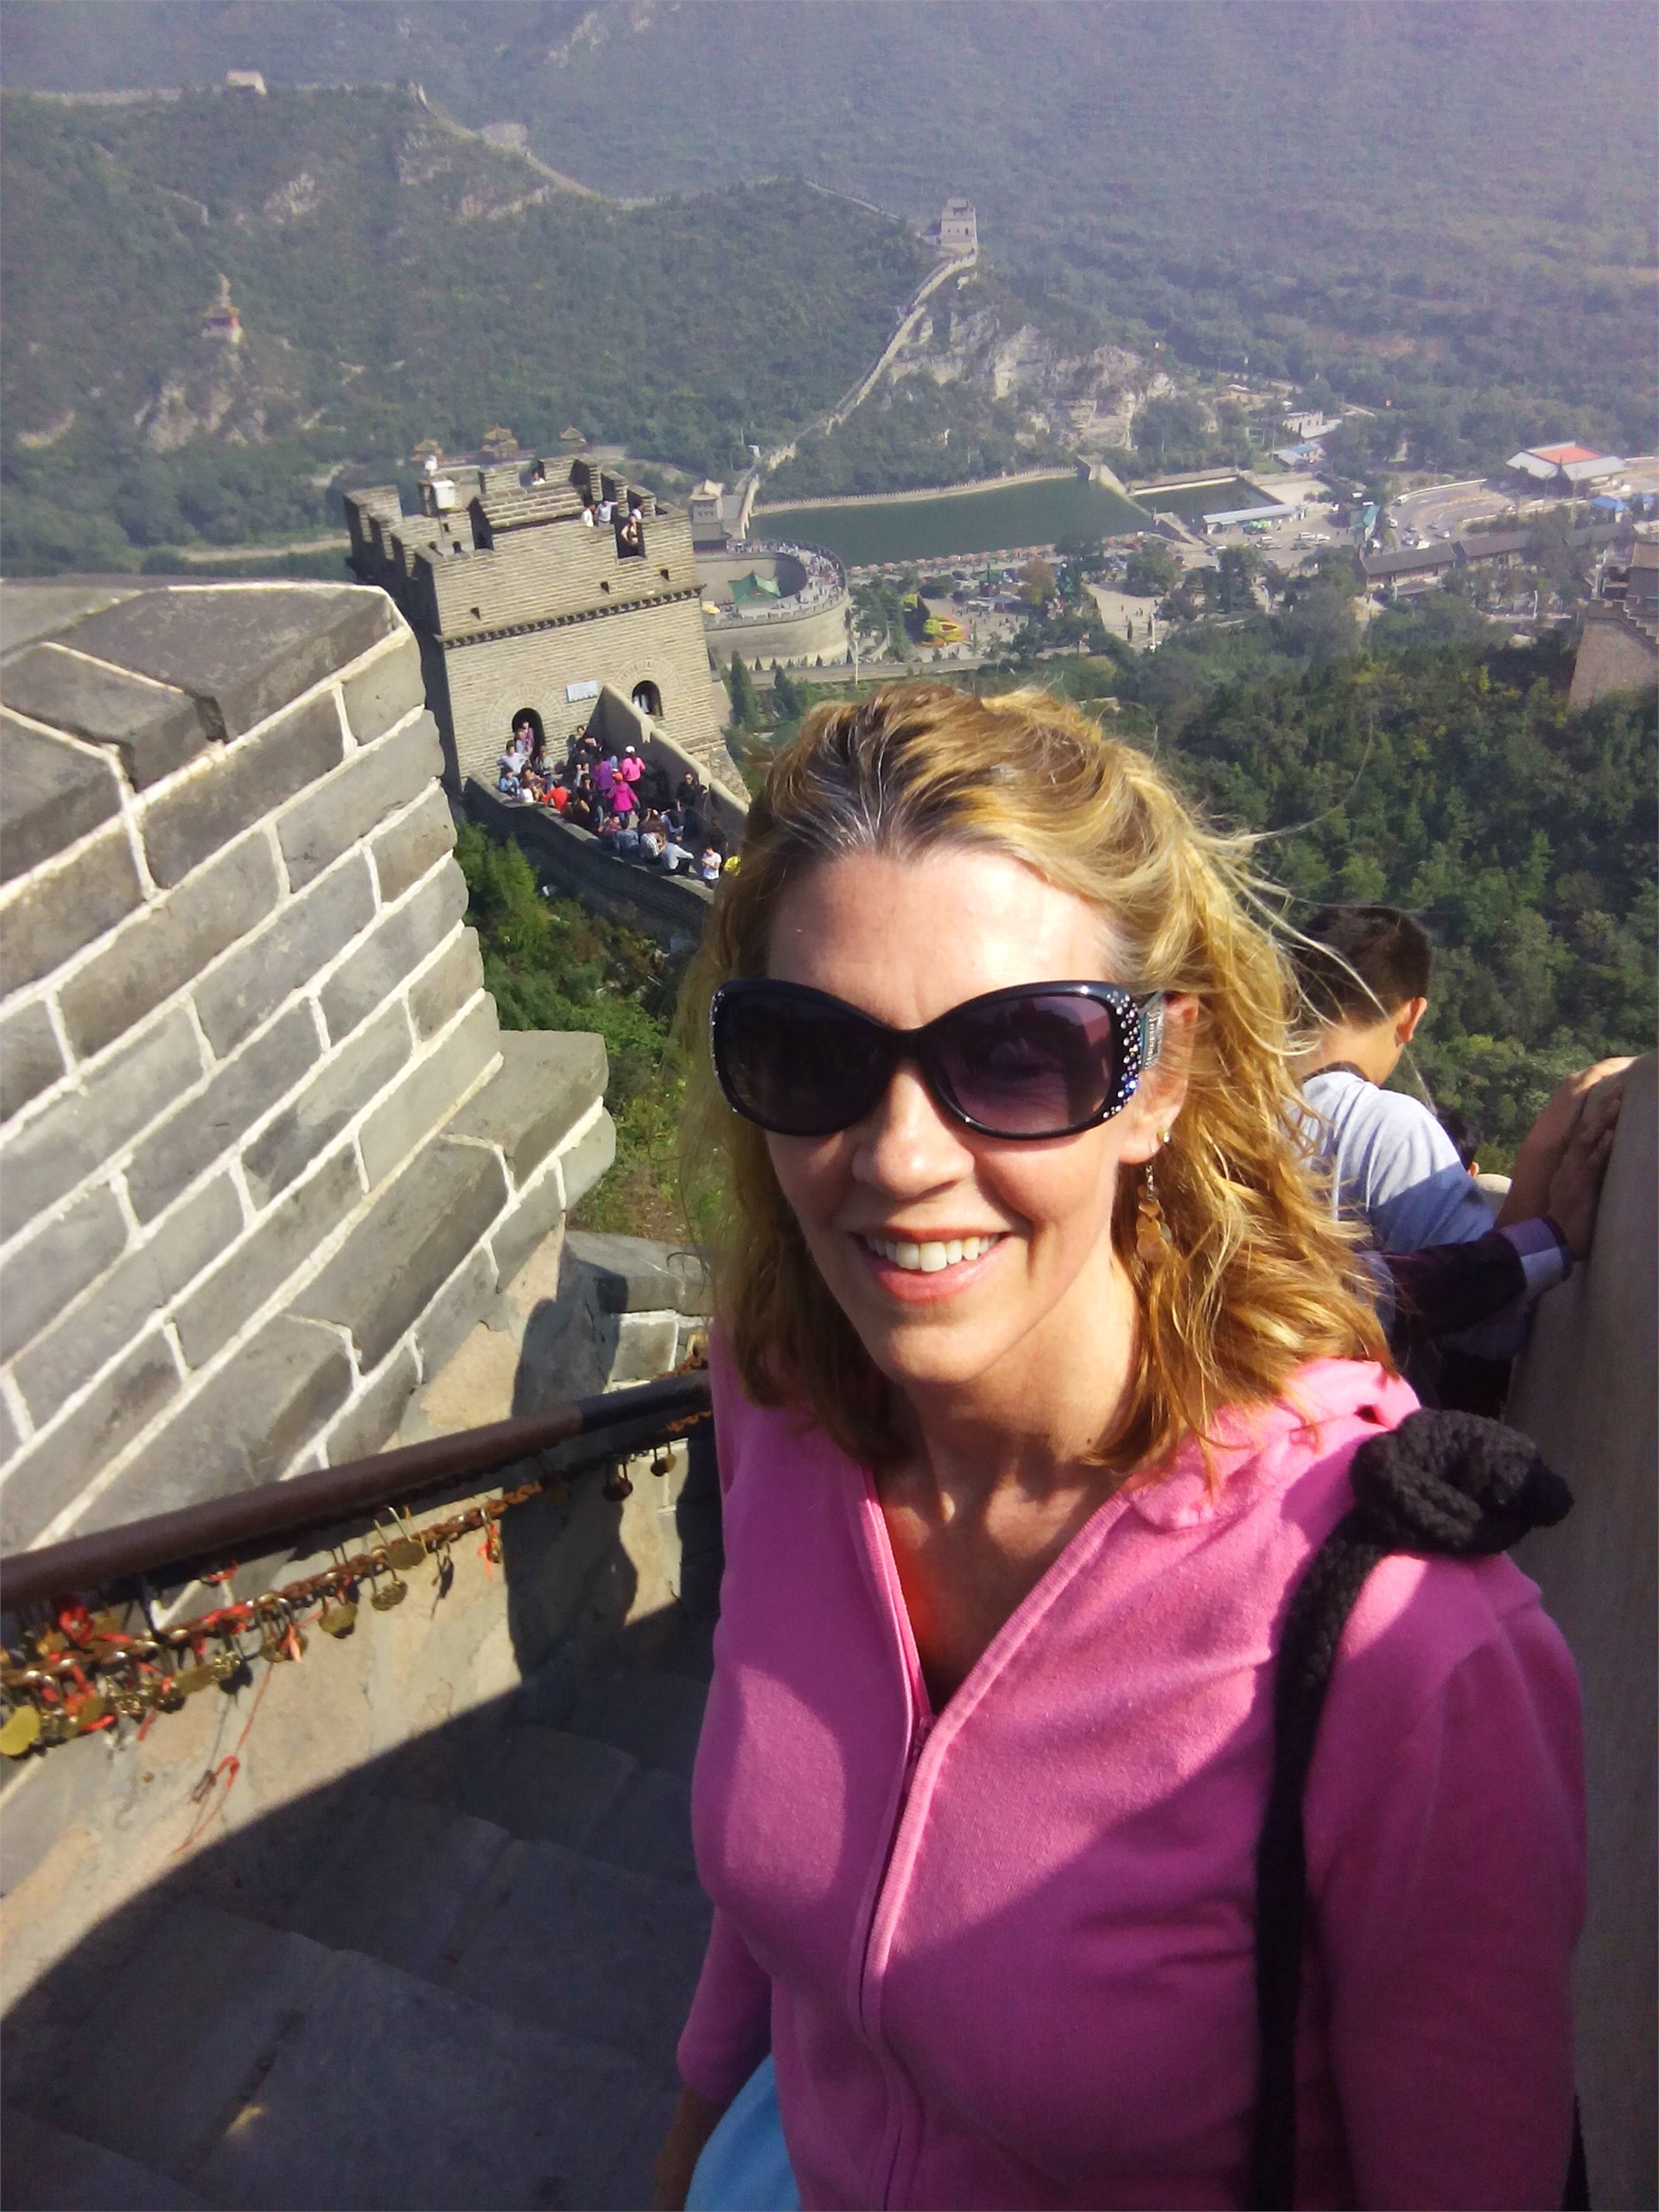 Tamara Pemberton on the Great Wall of China